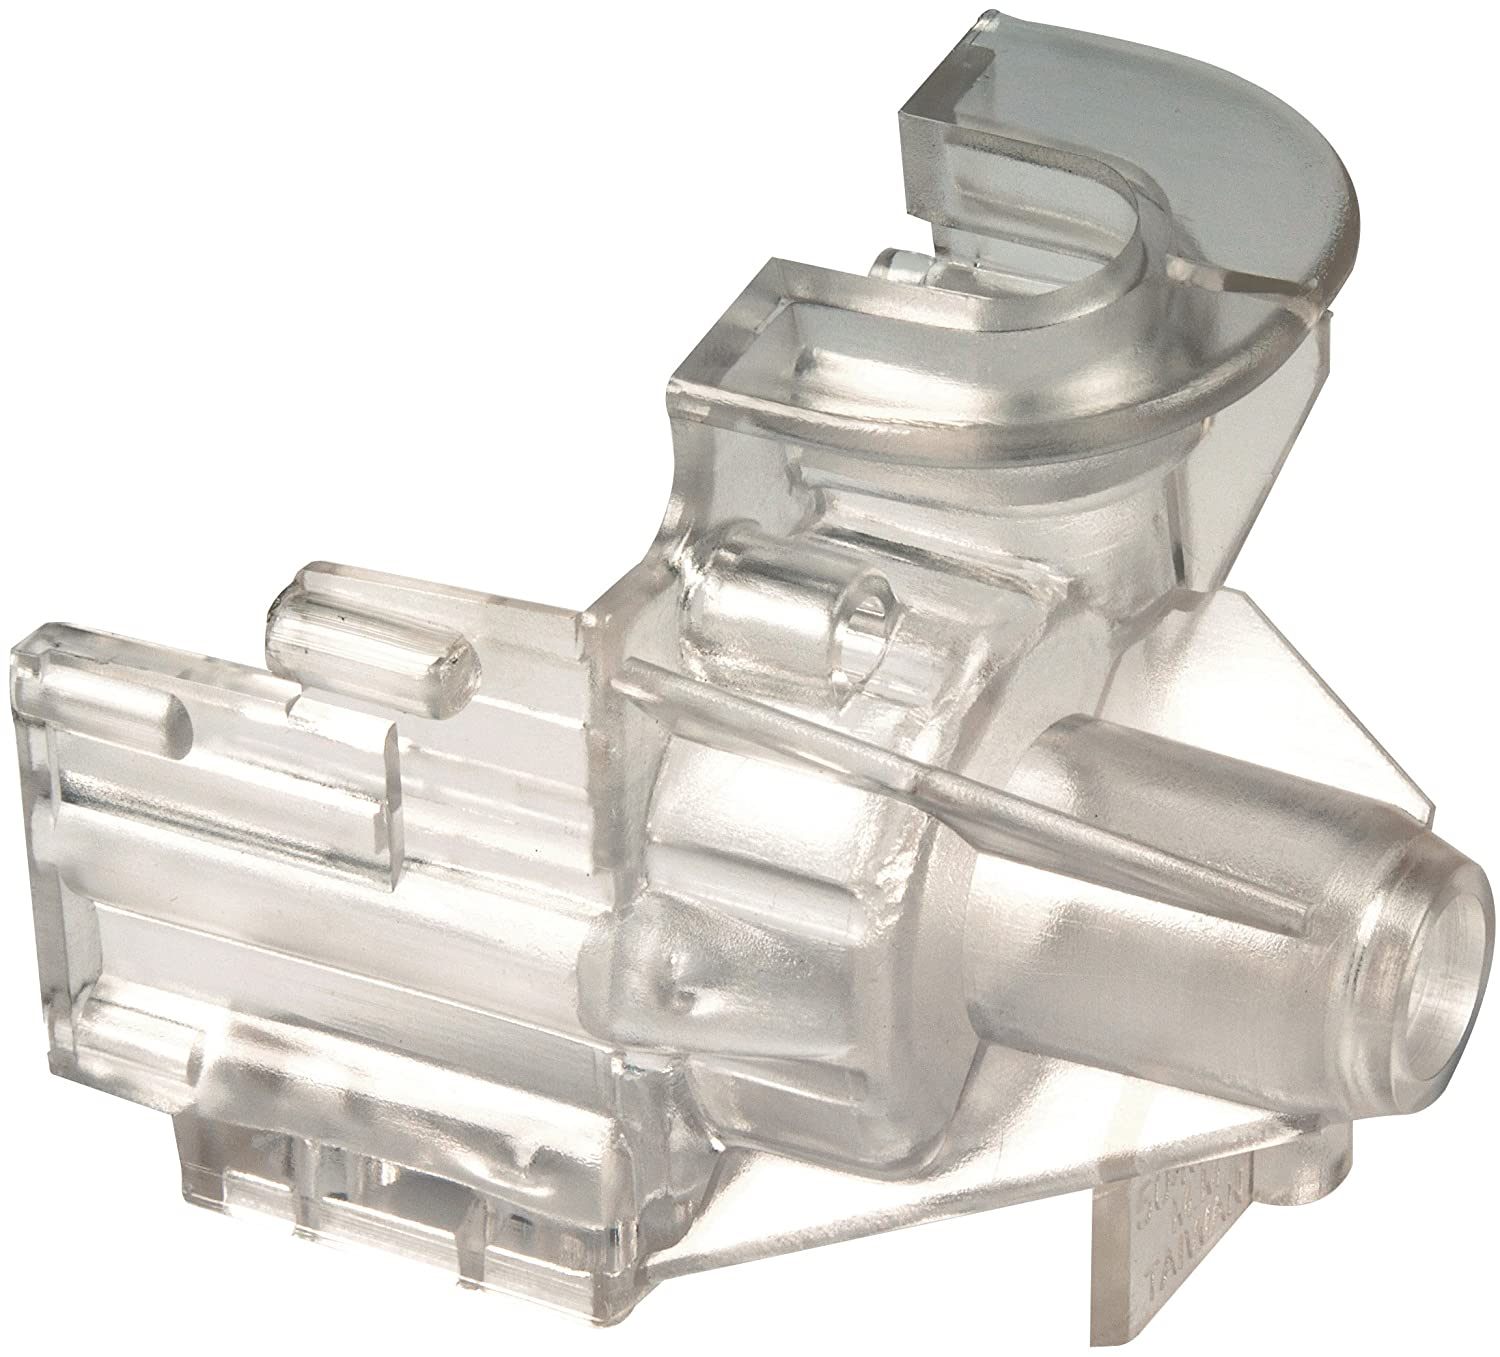 Dorman 747-001 Trunk Release Motor Housing Dorman - OE Solutions DOR:747-001